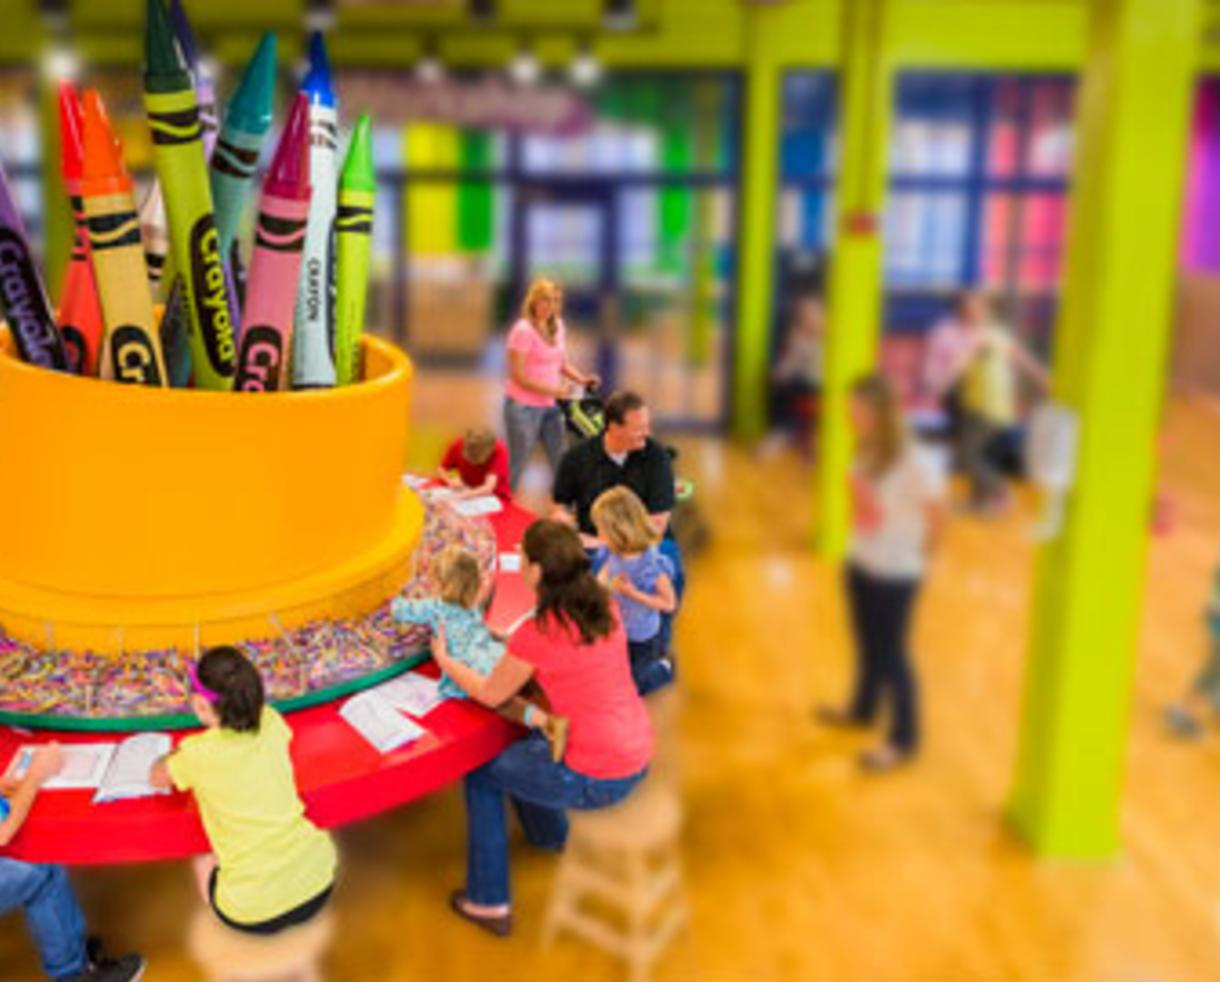 deal 12 99 for crayola experience admission easton pa 28 off